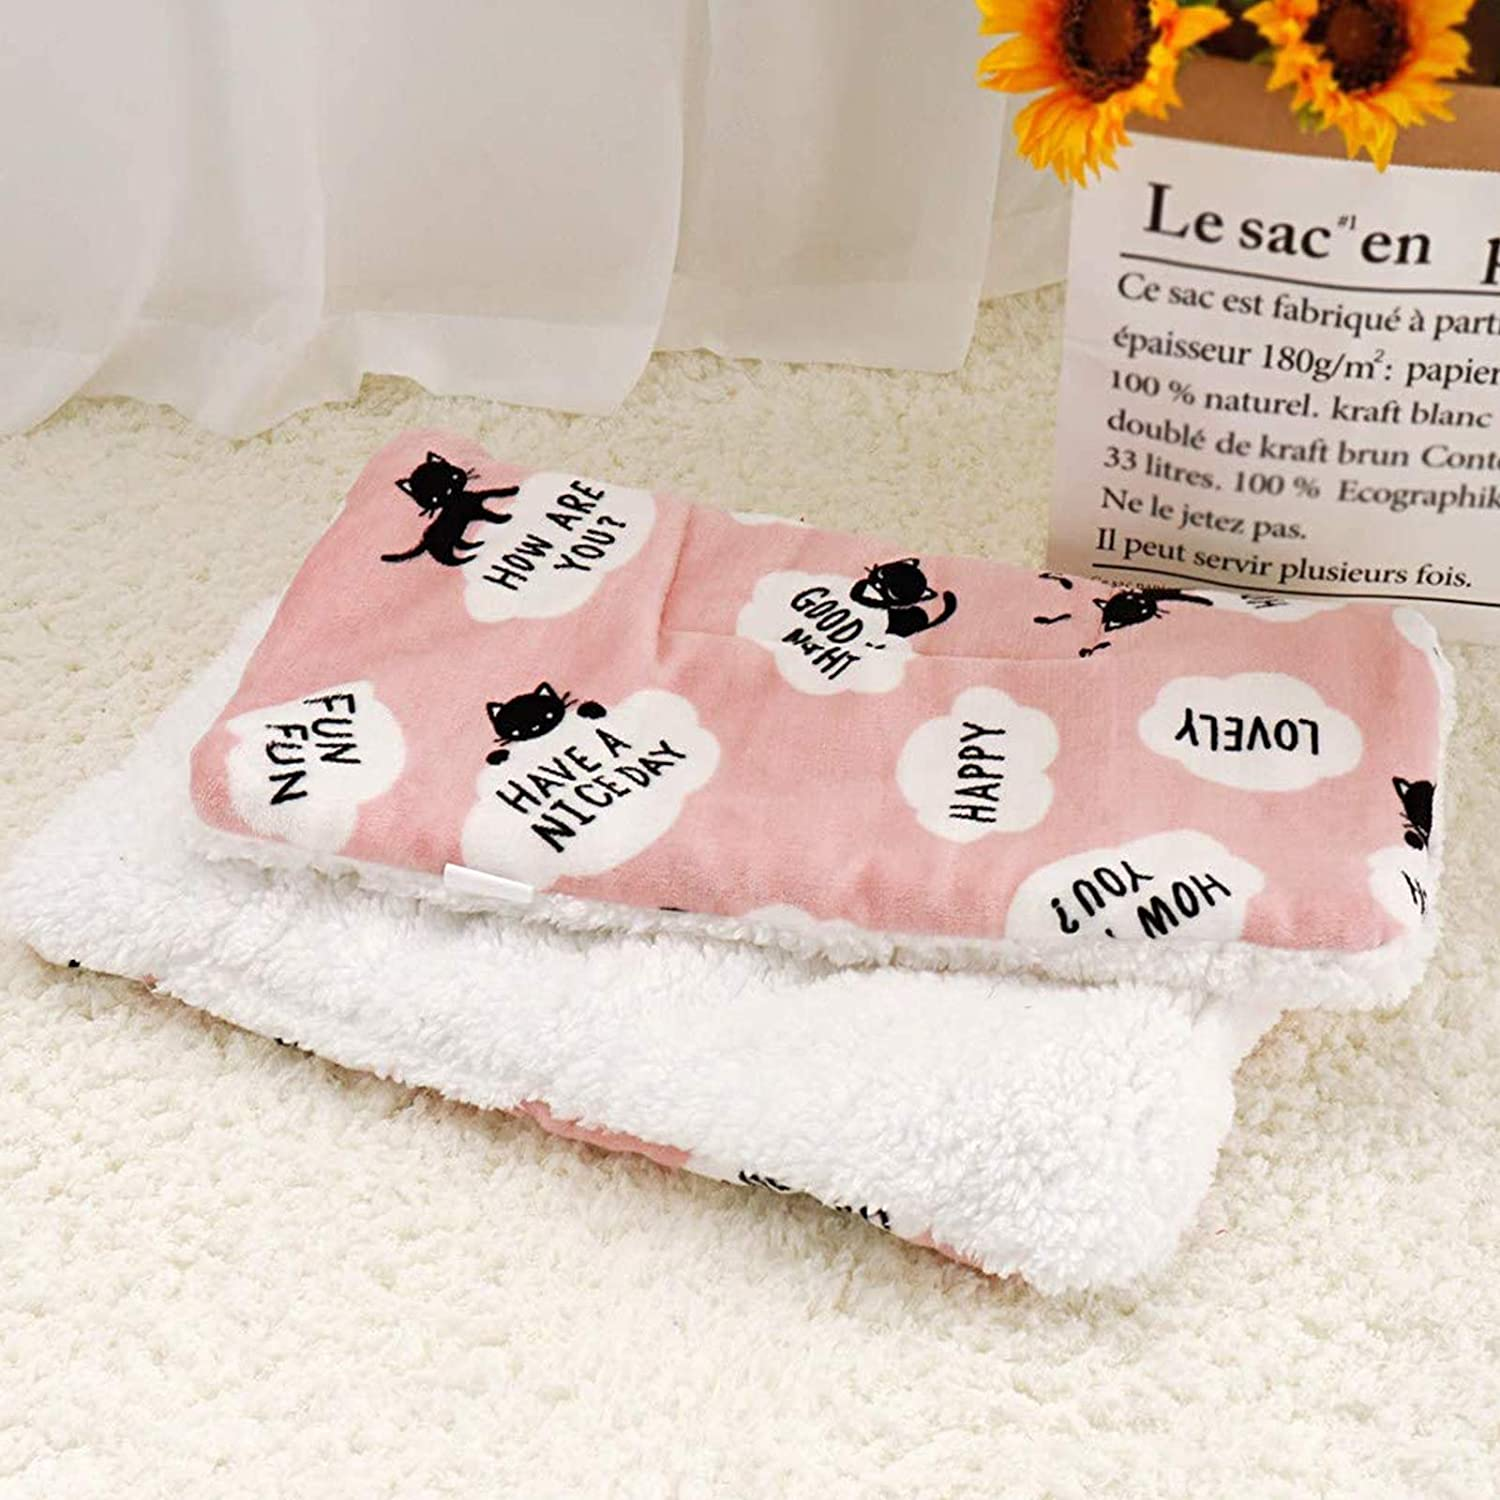 Cute Print Design Pink Fluffy Fleece Cat Cushion for Puppy Kitten Pad Mat 42x55cm Soft and Warm Pet Blankets for Sleeping Bed Sofa Cat Blanket Personalised Lvjkes Dog Blankets Washable